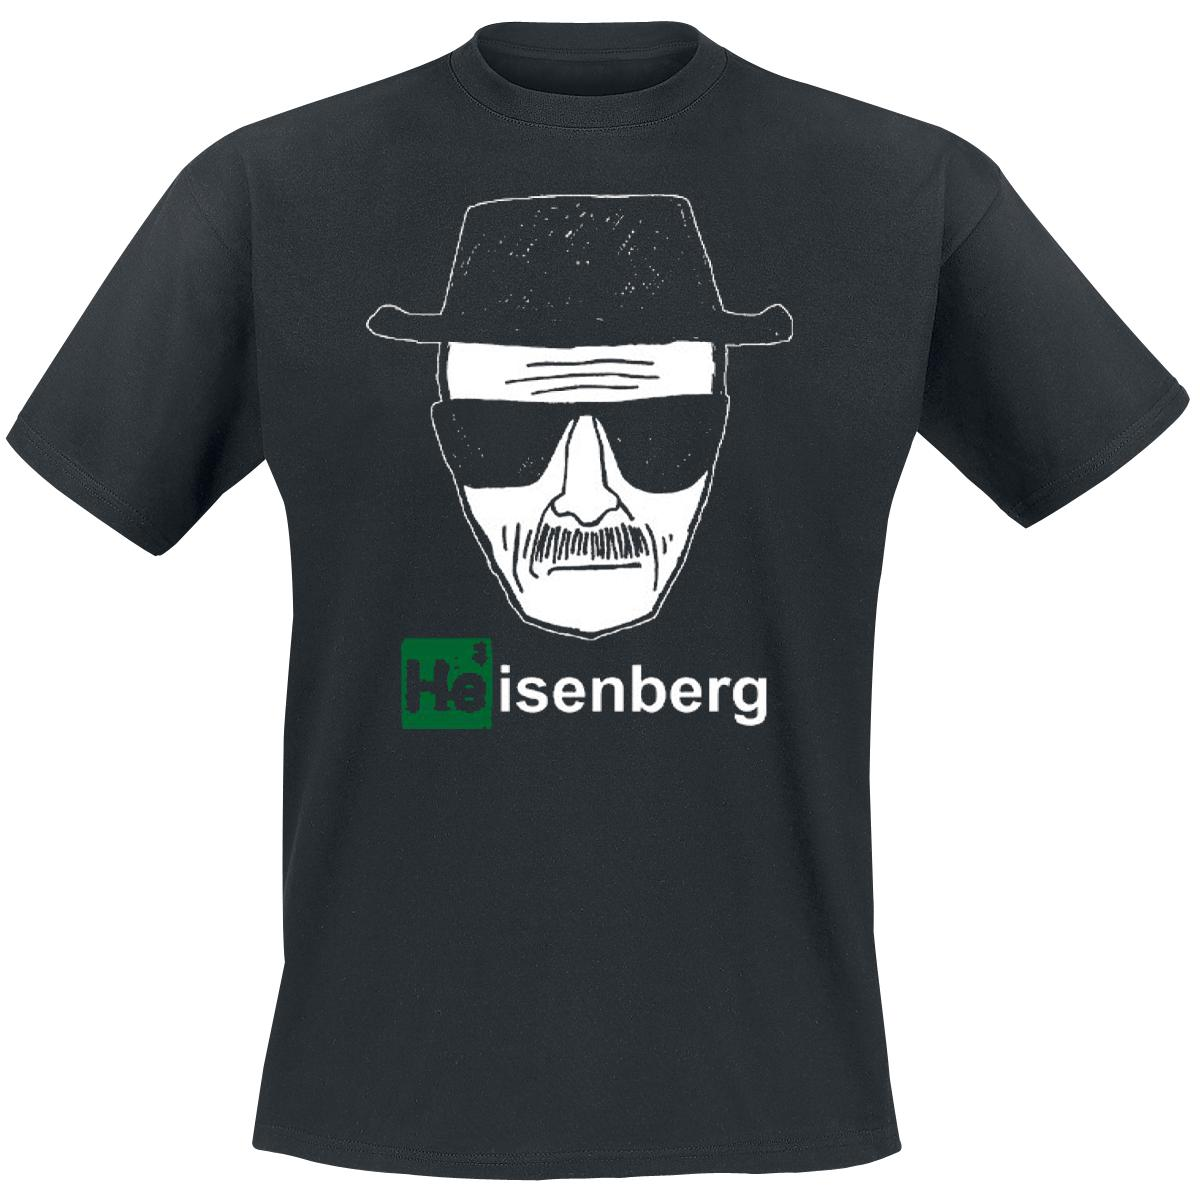 Heisenberg t shirt design reswag for T shirt design 2017